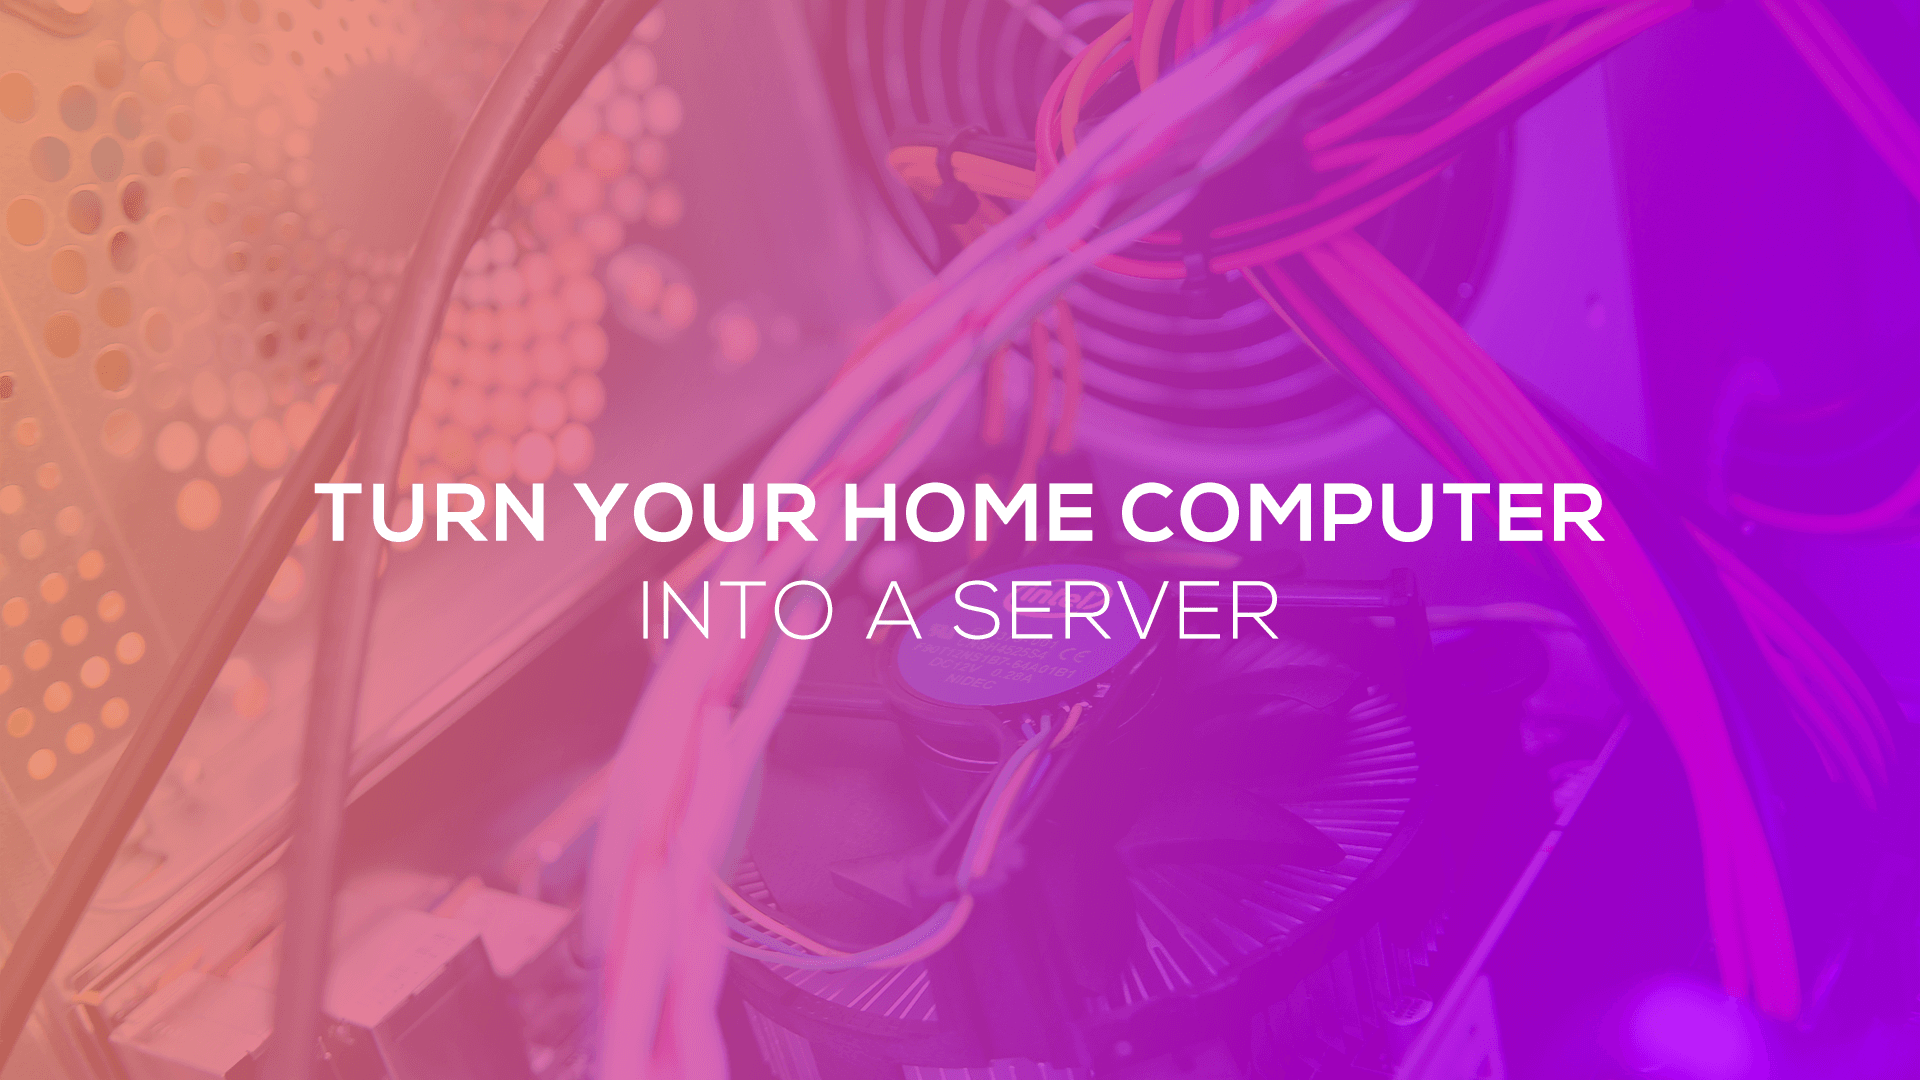 Turn your home computer into a server